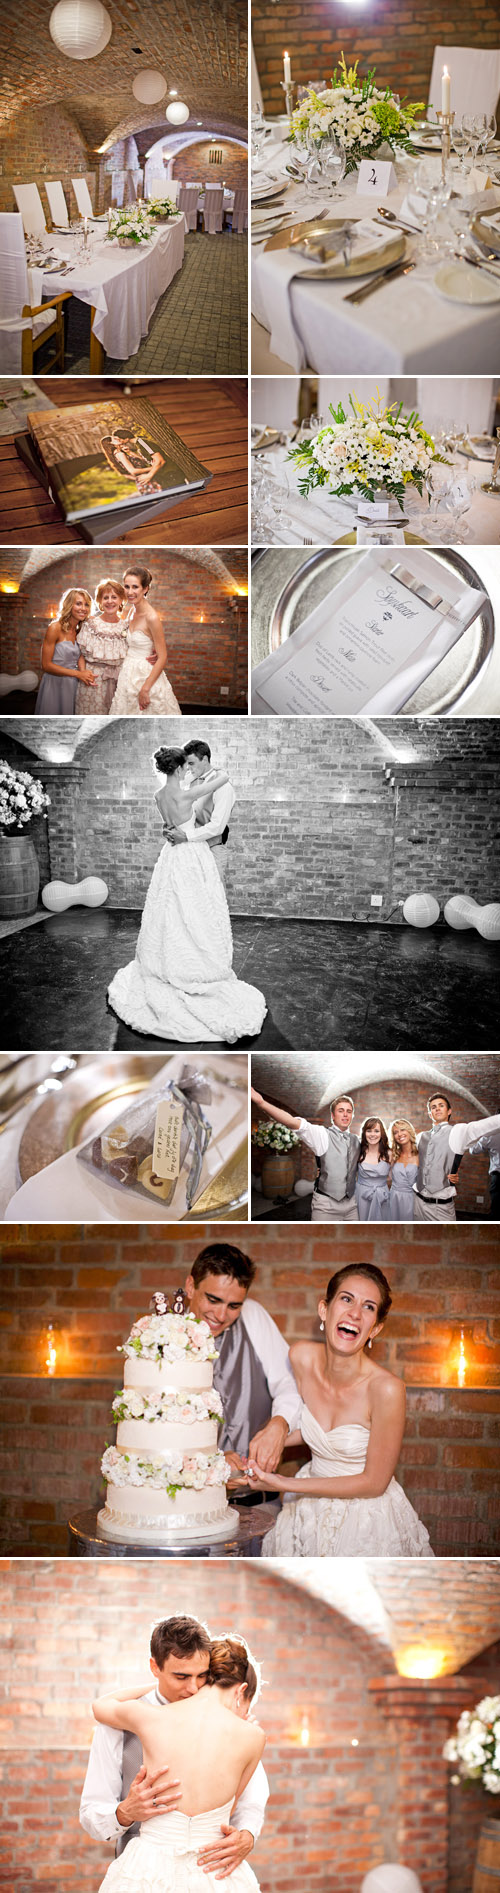 Vineyard white and silver wedding at Palmiet Valley Estate in Paarl, South Africa, photography by Rensche Mari